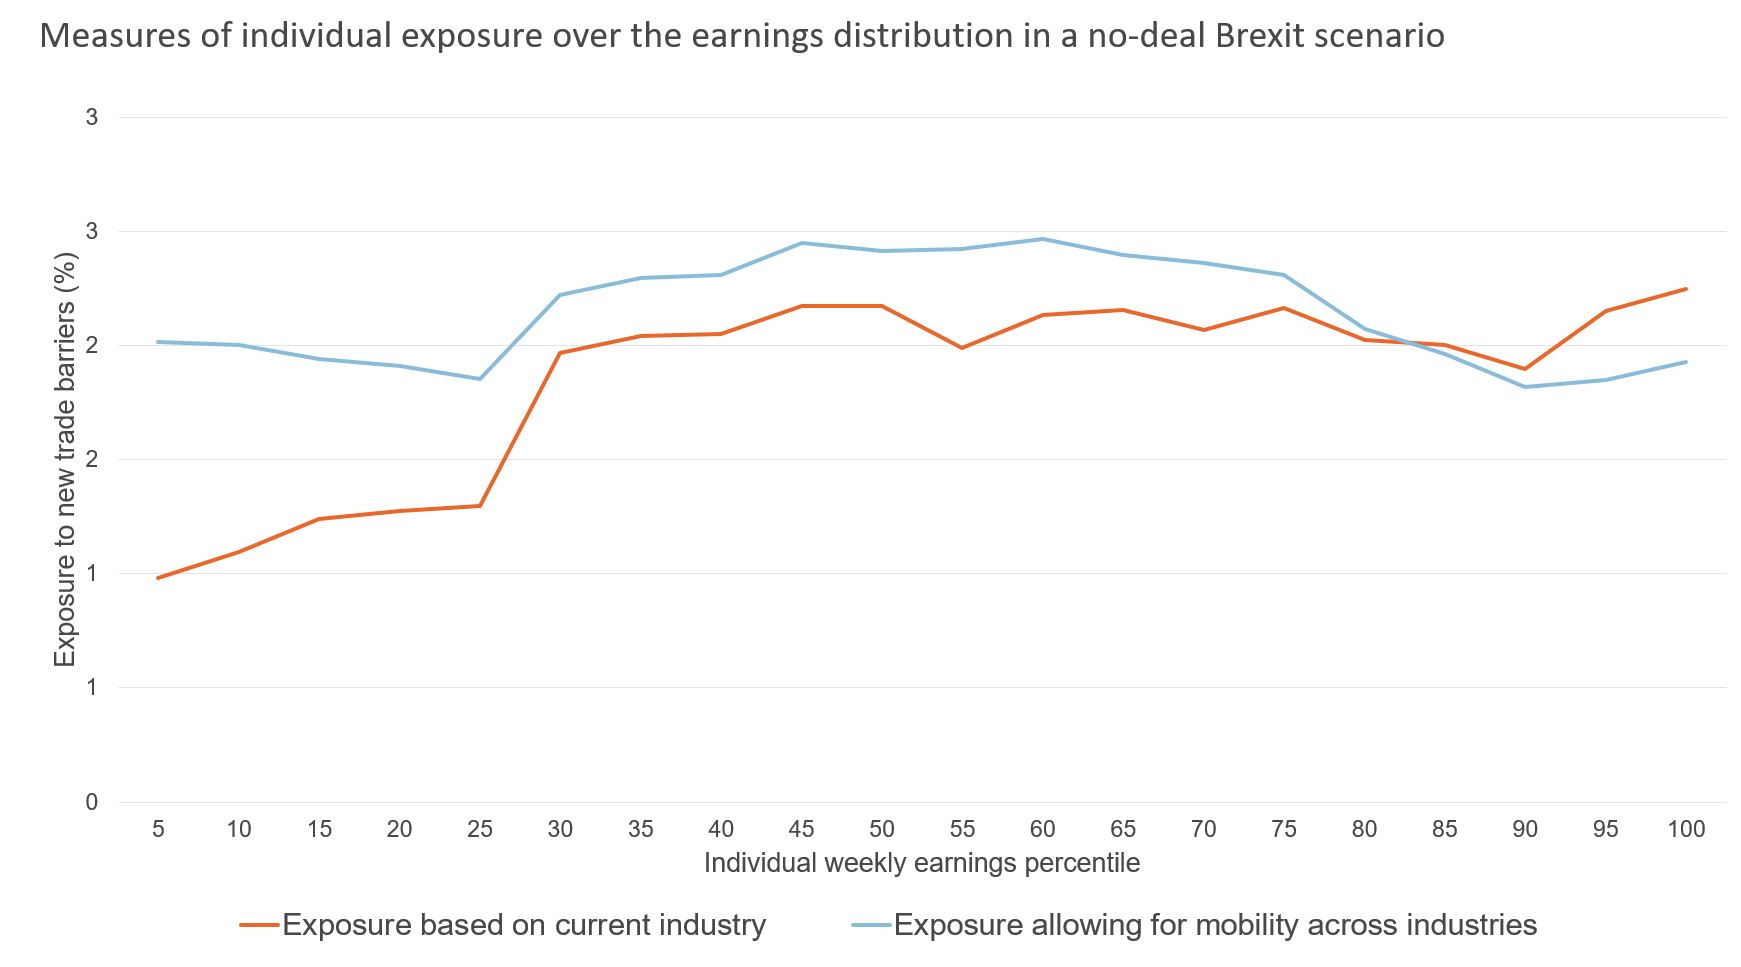 Figure showing measures of individual exposure over the earnings distribution in no-deal Brexit